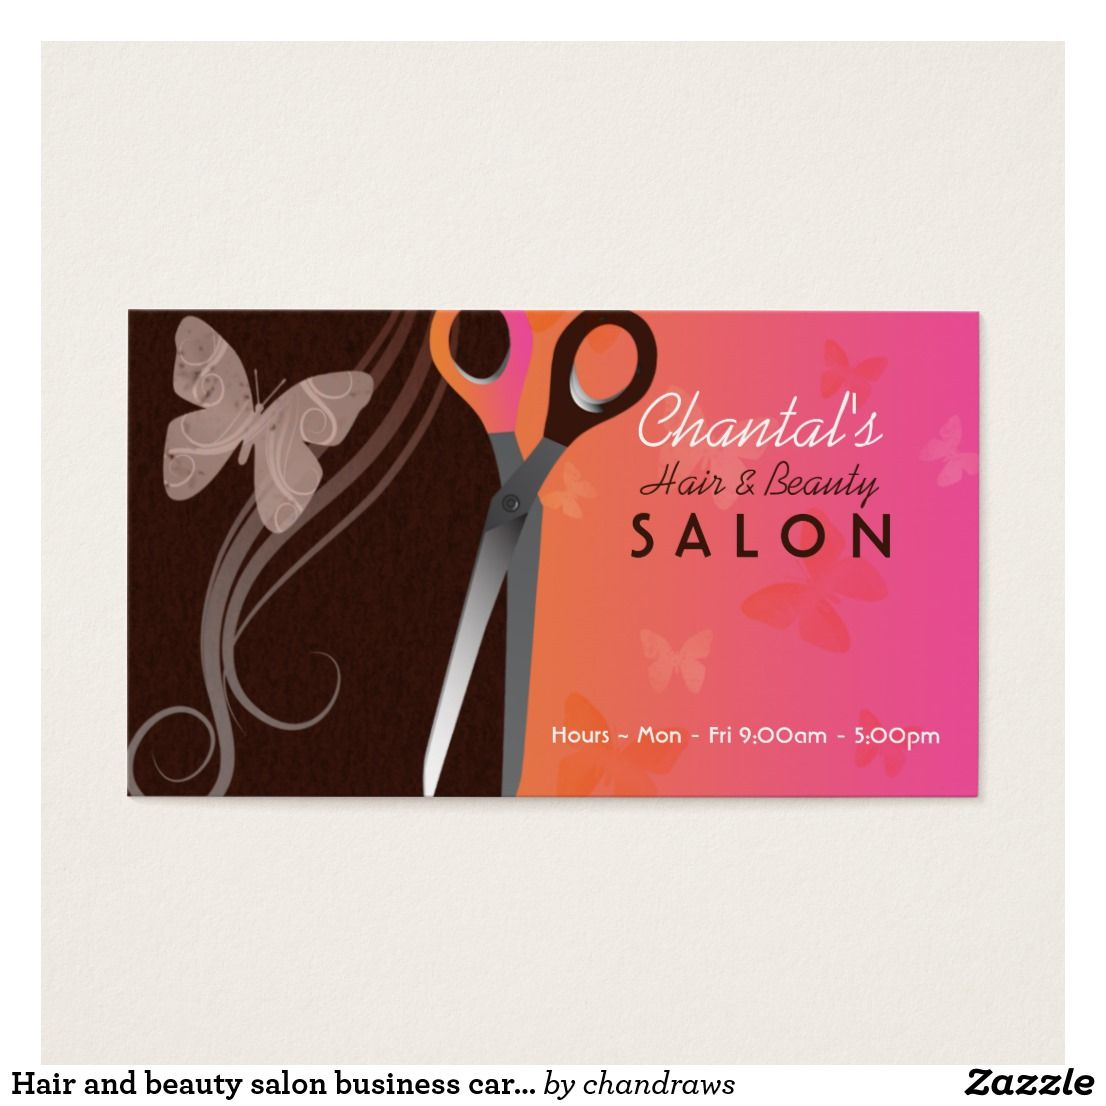 Hair and beauty salon business cards | Salons